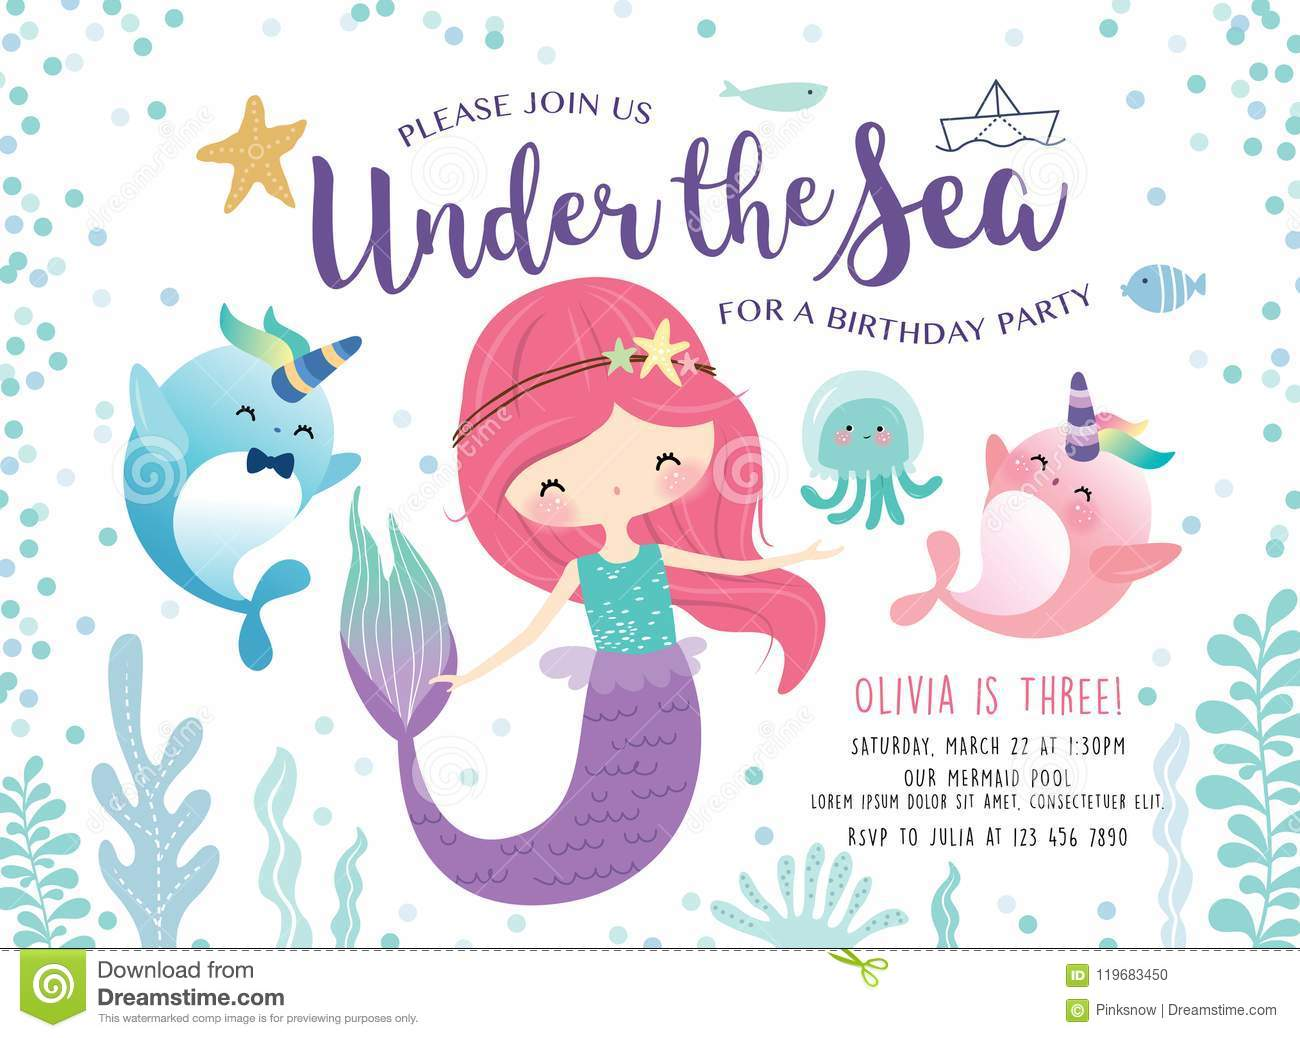 https www dreamstime com kids birthday party invitation card cute little mermaid marine life kids under sea birthday party invitation card image119683450